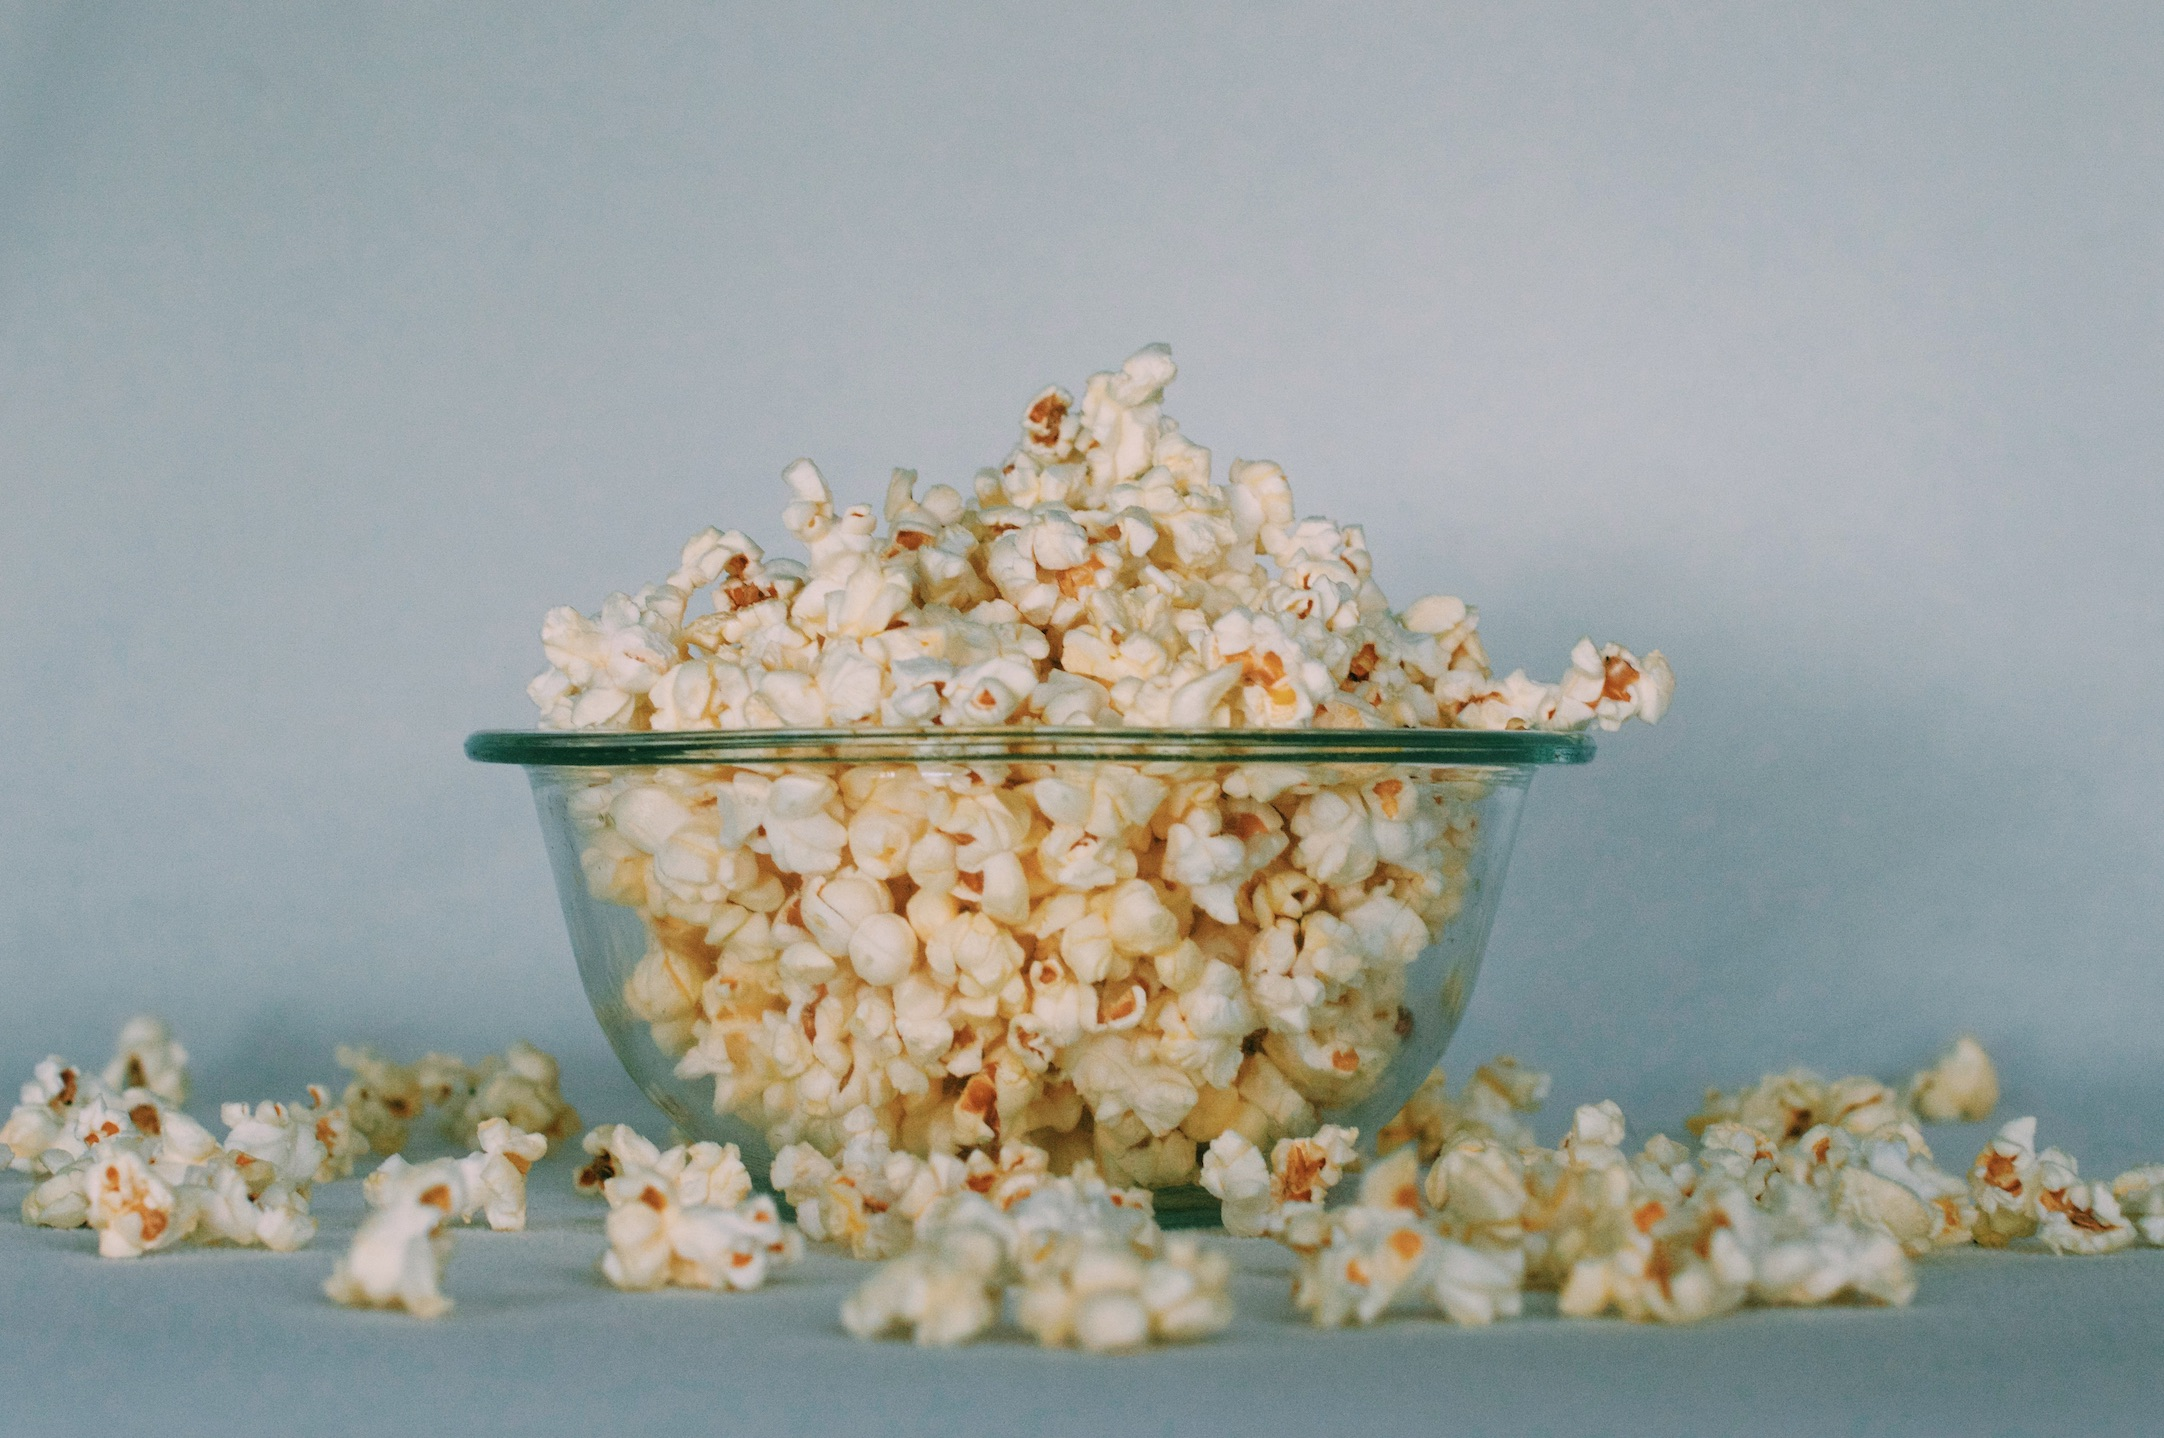 Best Family Movies for Tweens and Teens